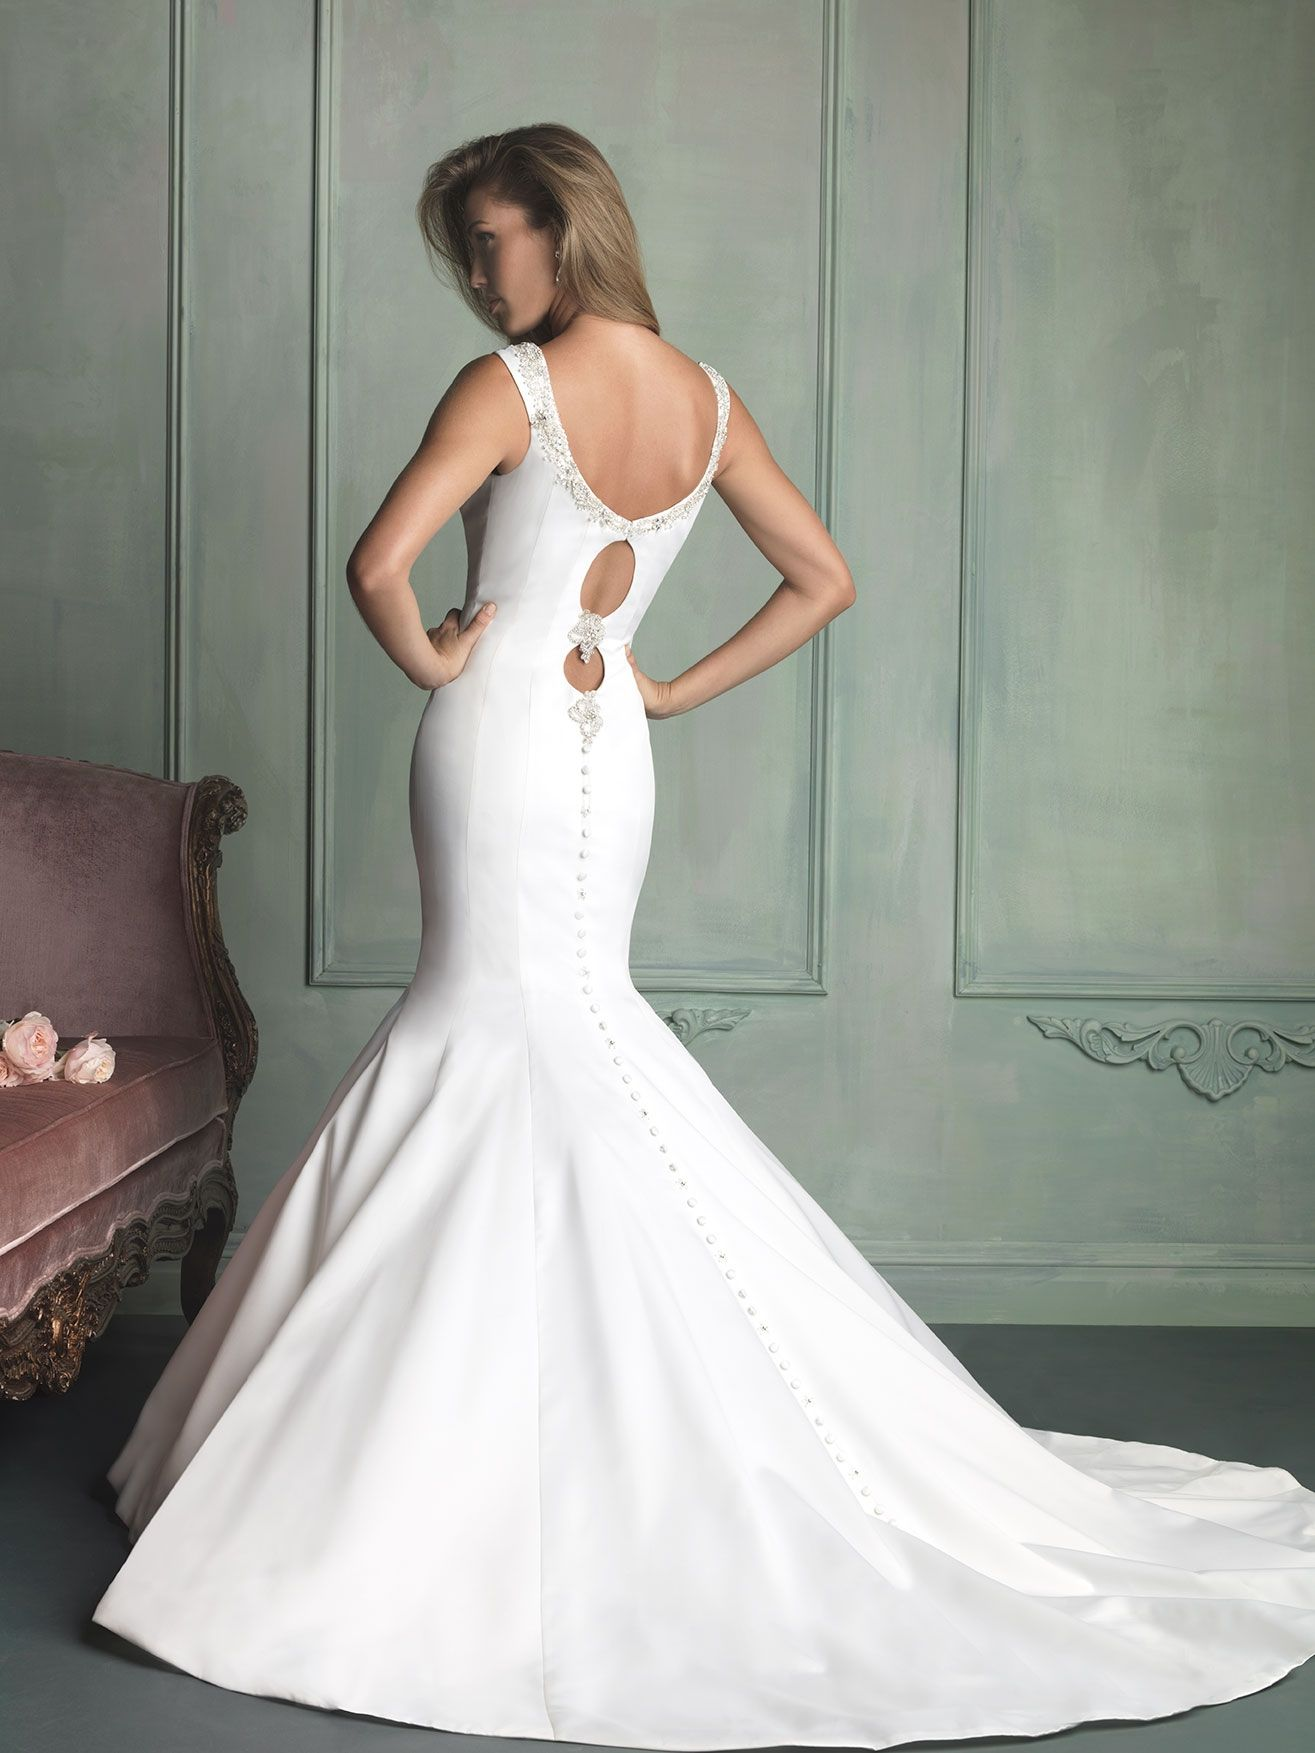 Allure Bridals : Allure Collection : Style 9118 : Available colours : White/Silver, Ivory/Silver (back)